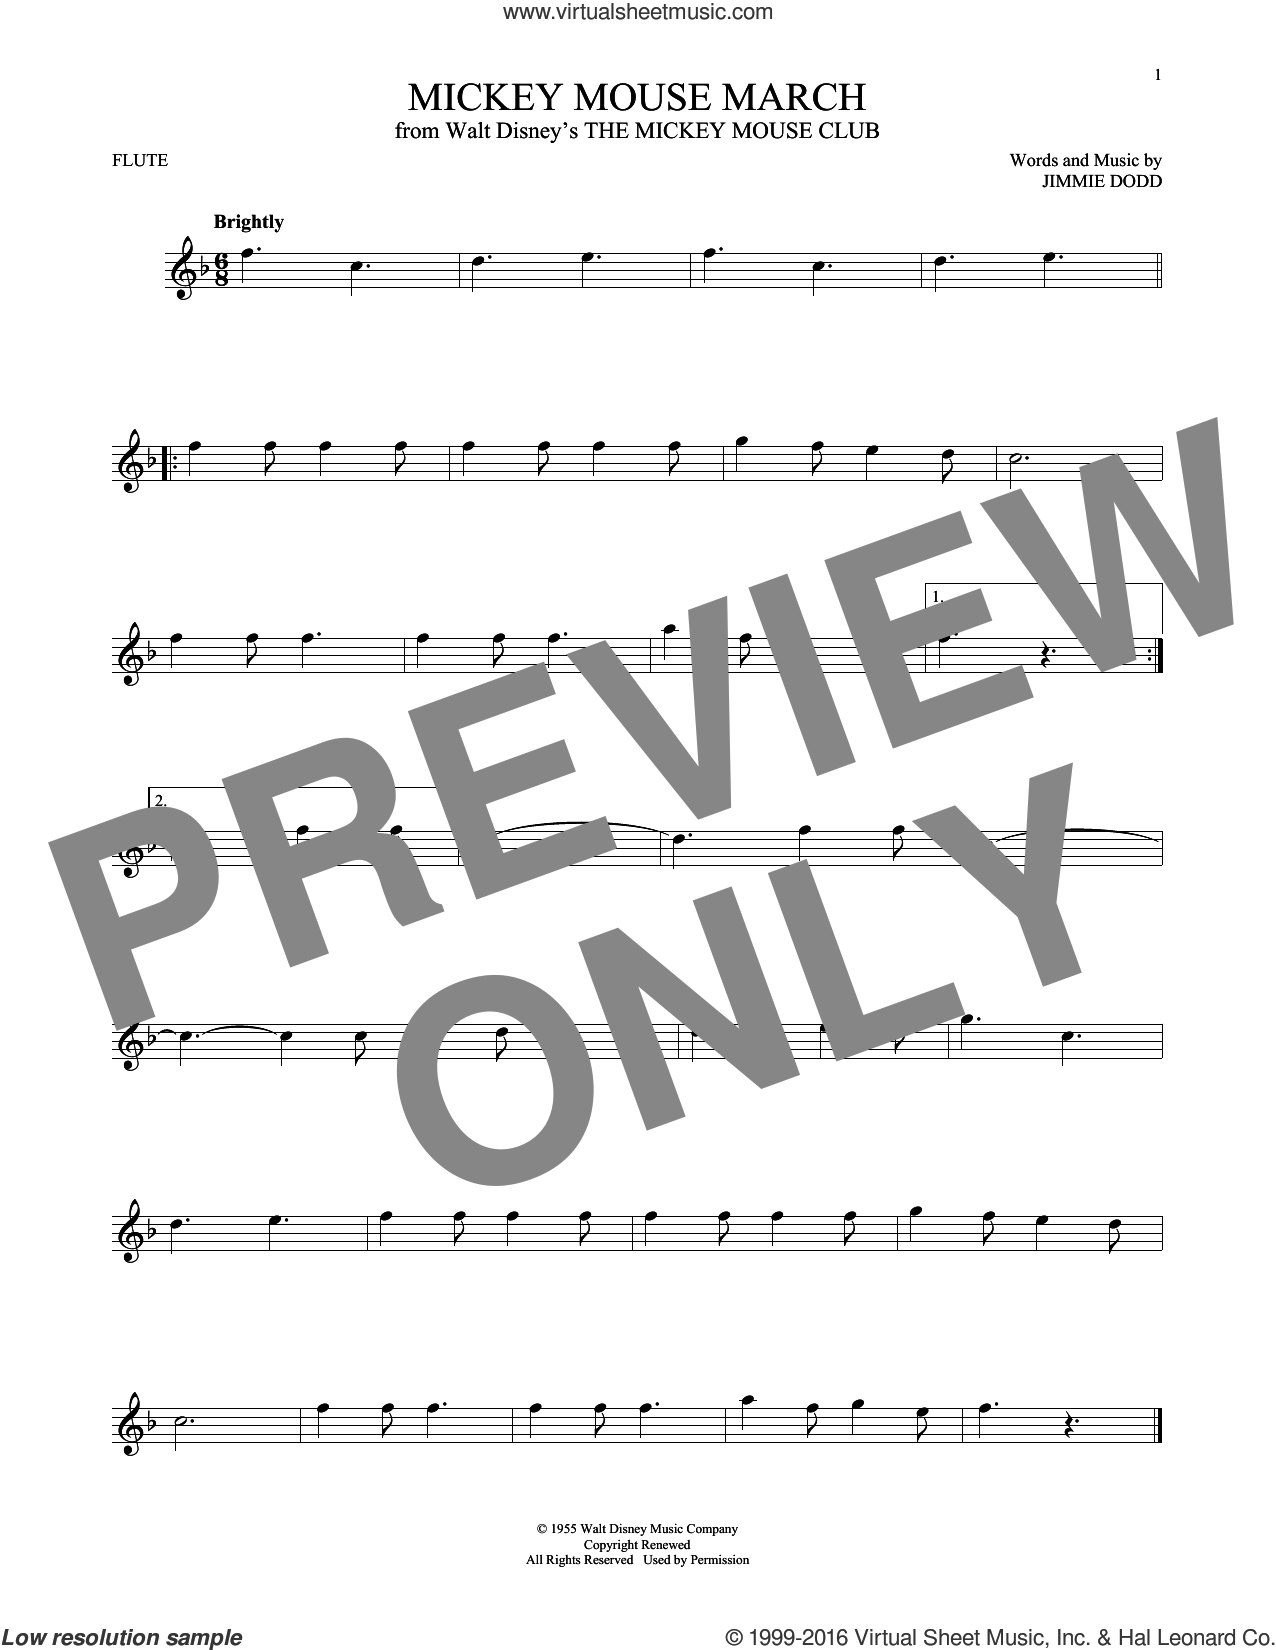 Mickey Mouse March sheet music for flute solo by Jimmie Dodd, intermediate skill level